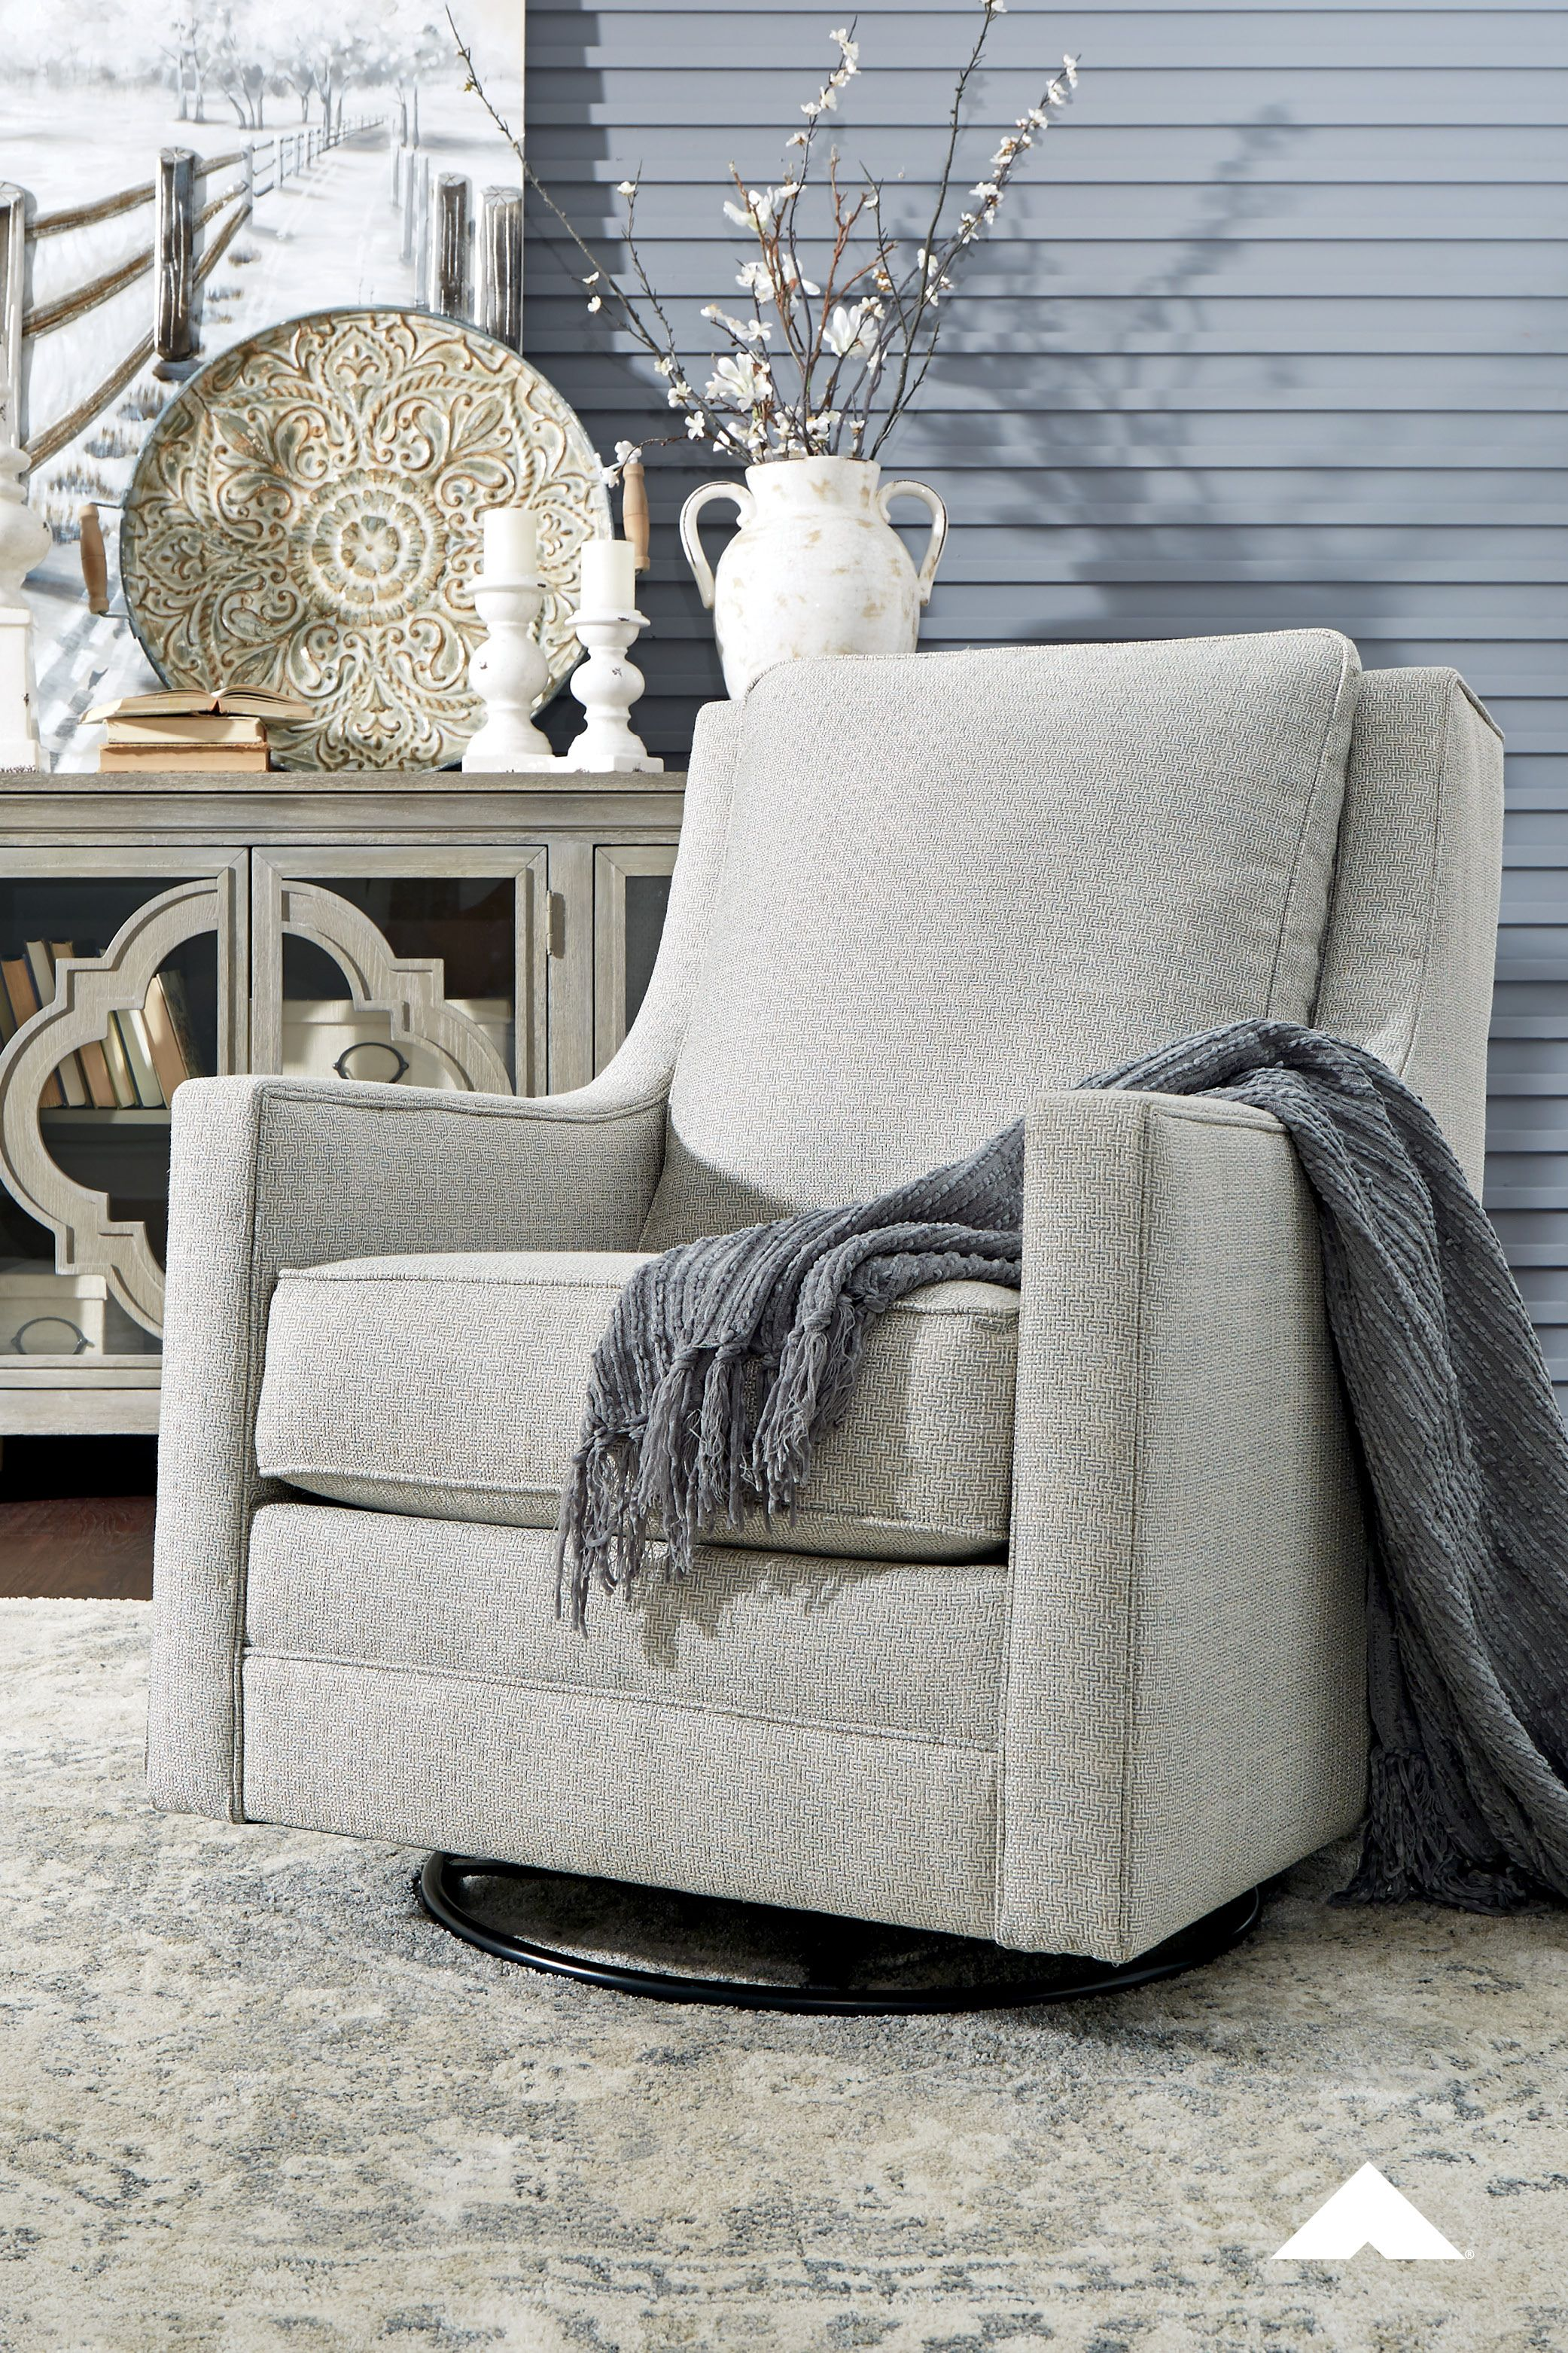 Kambria Frost Swivel Glider Accent Chair By Ashley Furniture Crisp And Cool But Not Without Its In 2020 Ashley Furniture Ashley Furniture Industries Furniture Design